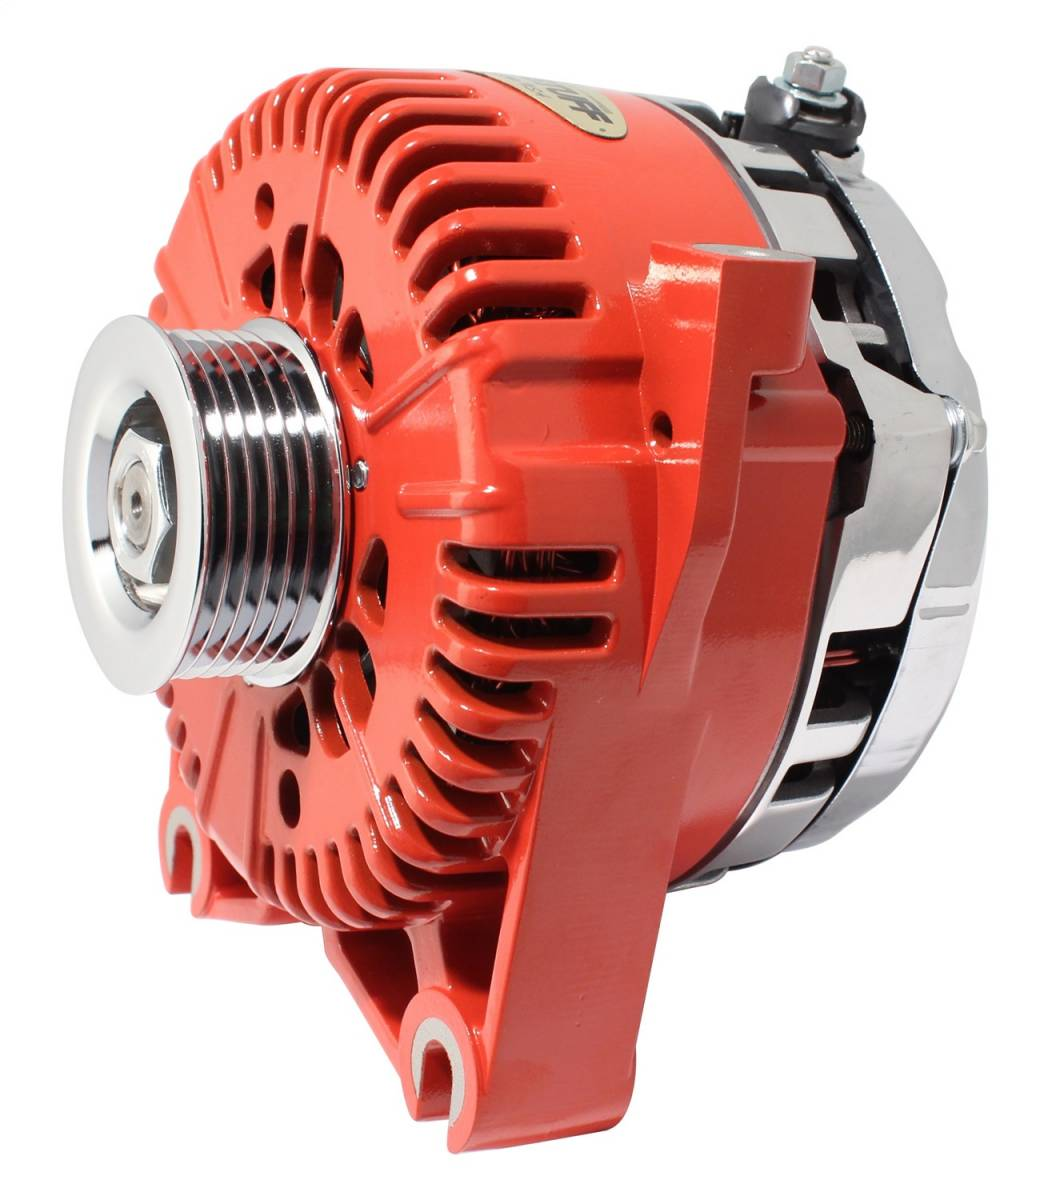 Tuff Stuff Performance - Alternator 150 AMP DOHC Applications OEM Wire 6 Groove Pulley Internal Regulator Red 7781ARED